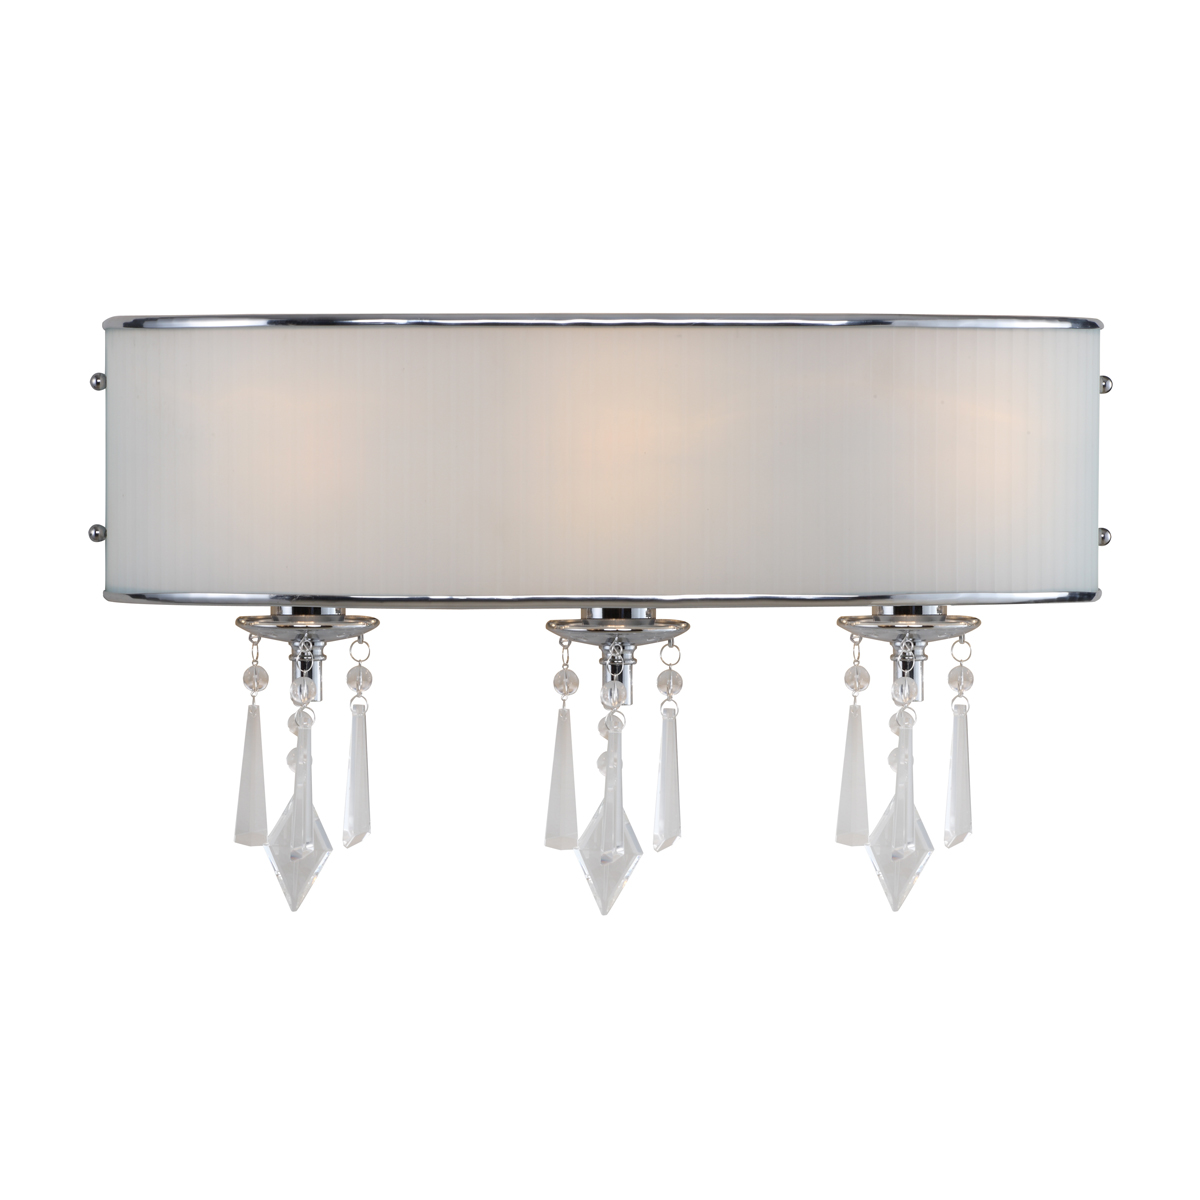 Golden lighting 8981 ba3 echelon 3 light bathroom vanity for Bathroom 3 light fixtures